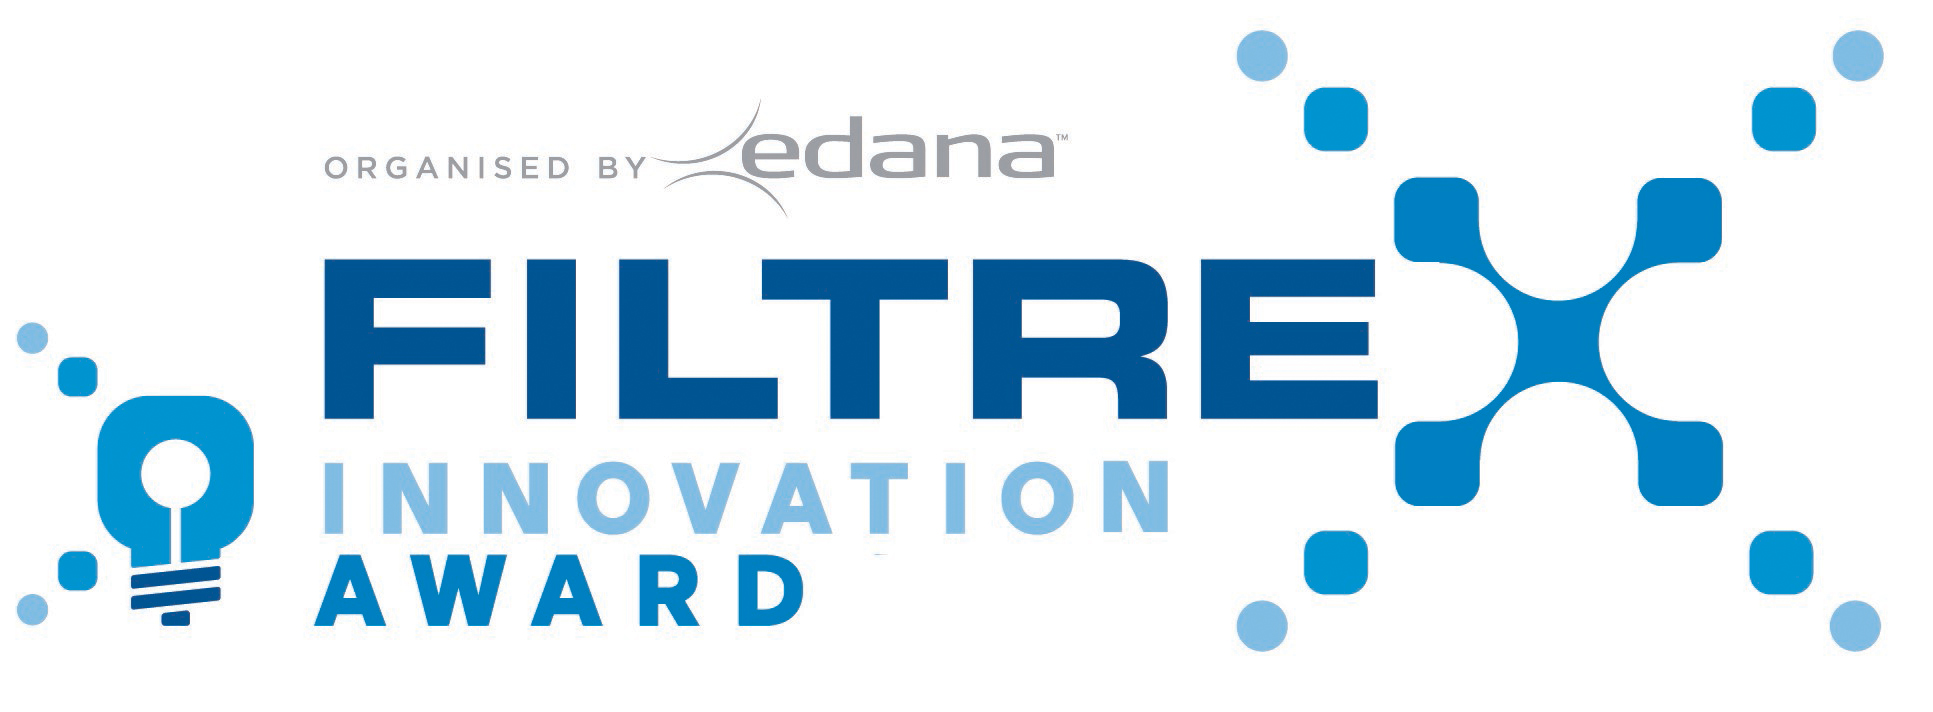 FILTREX Innovation Award logo